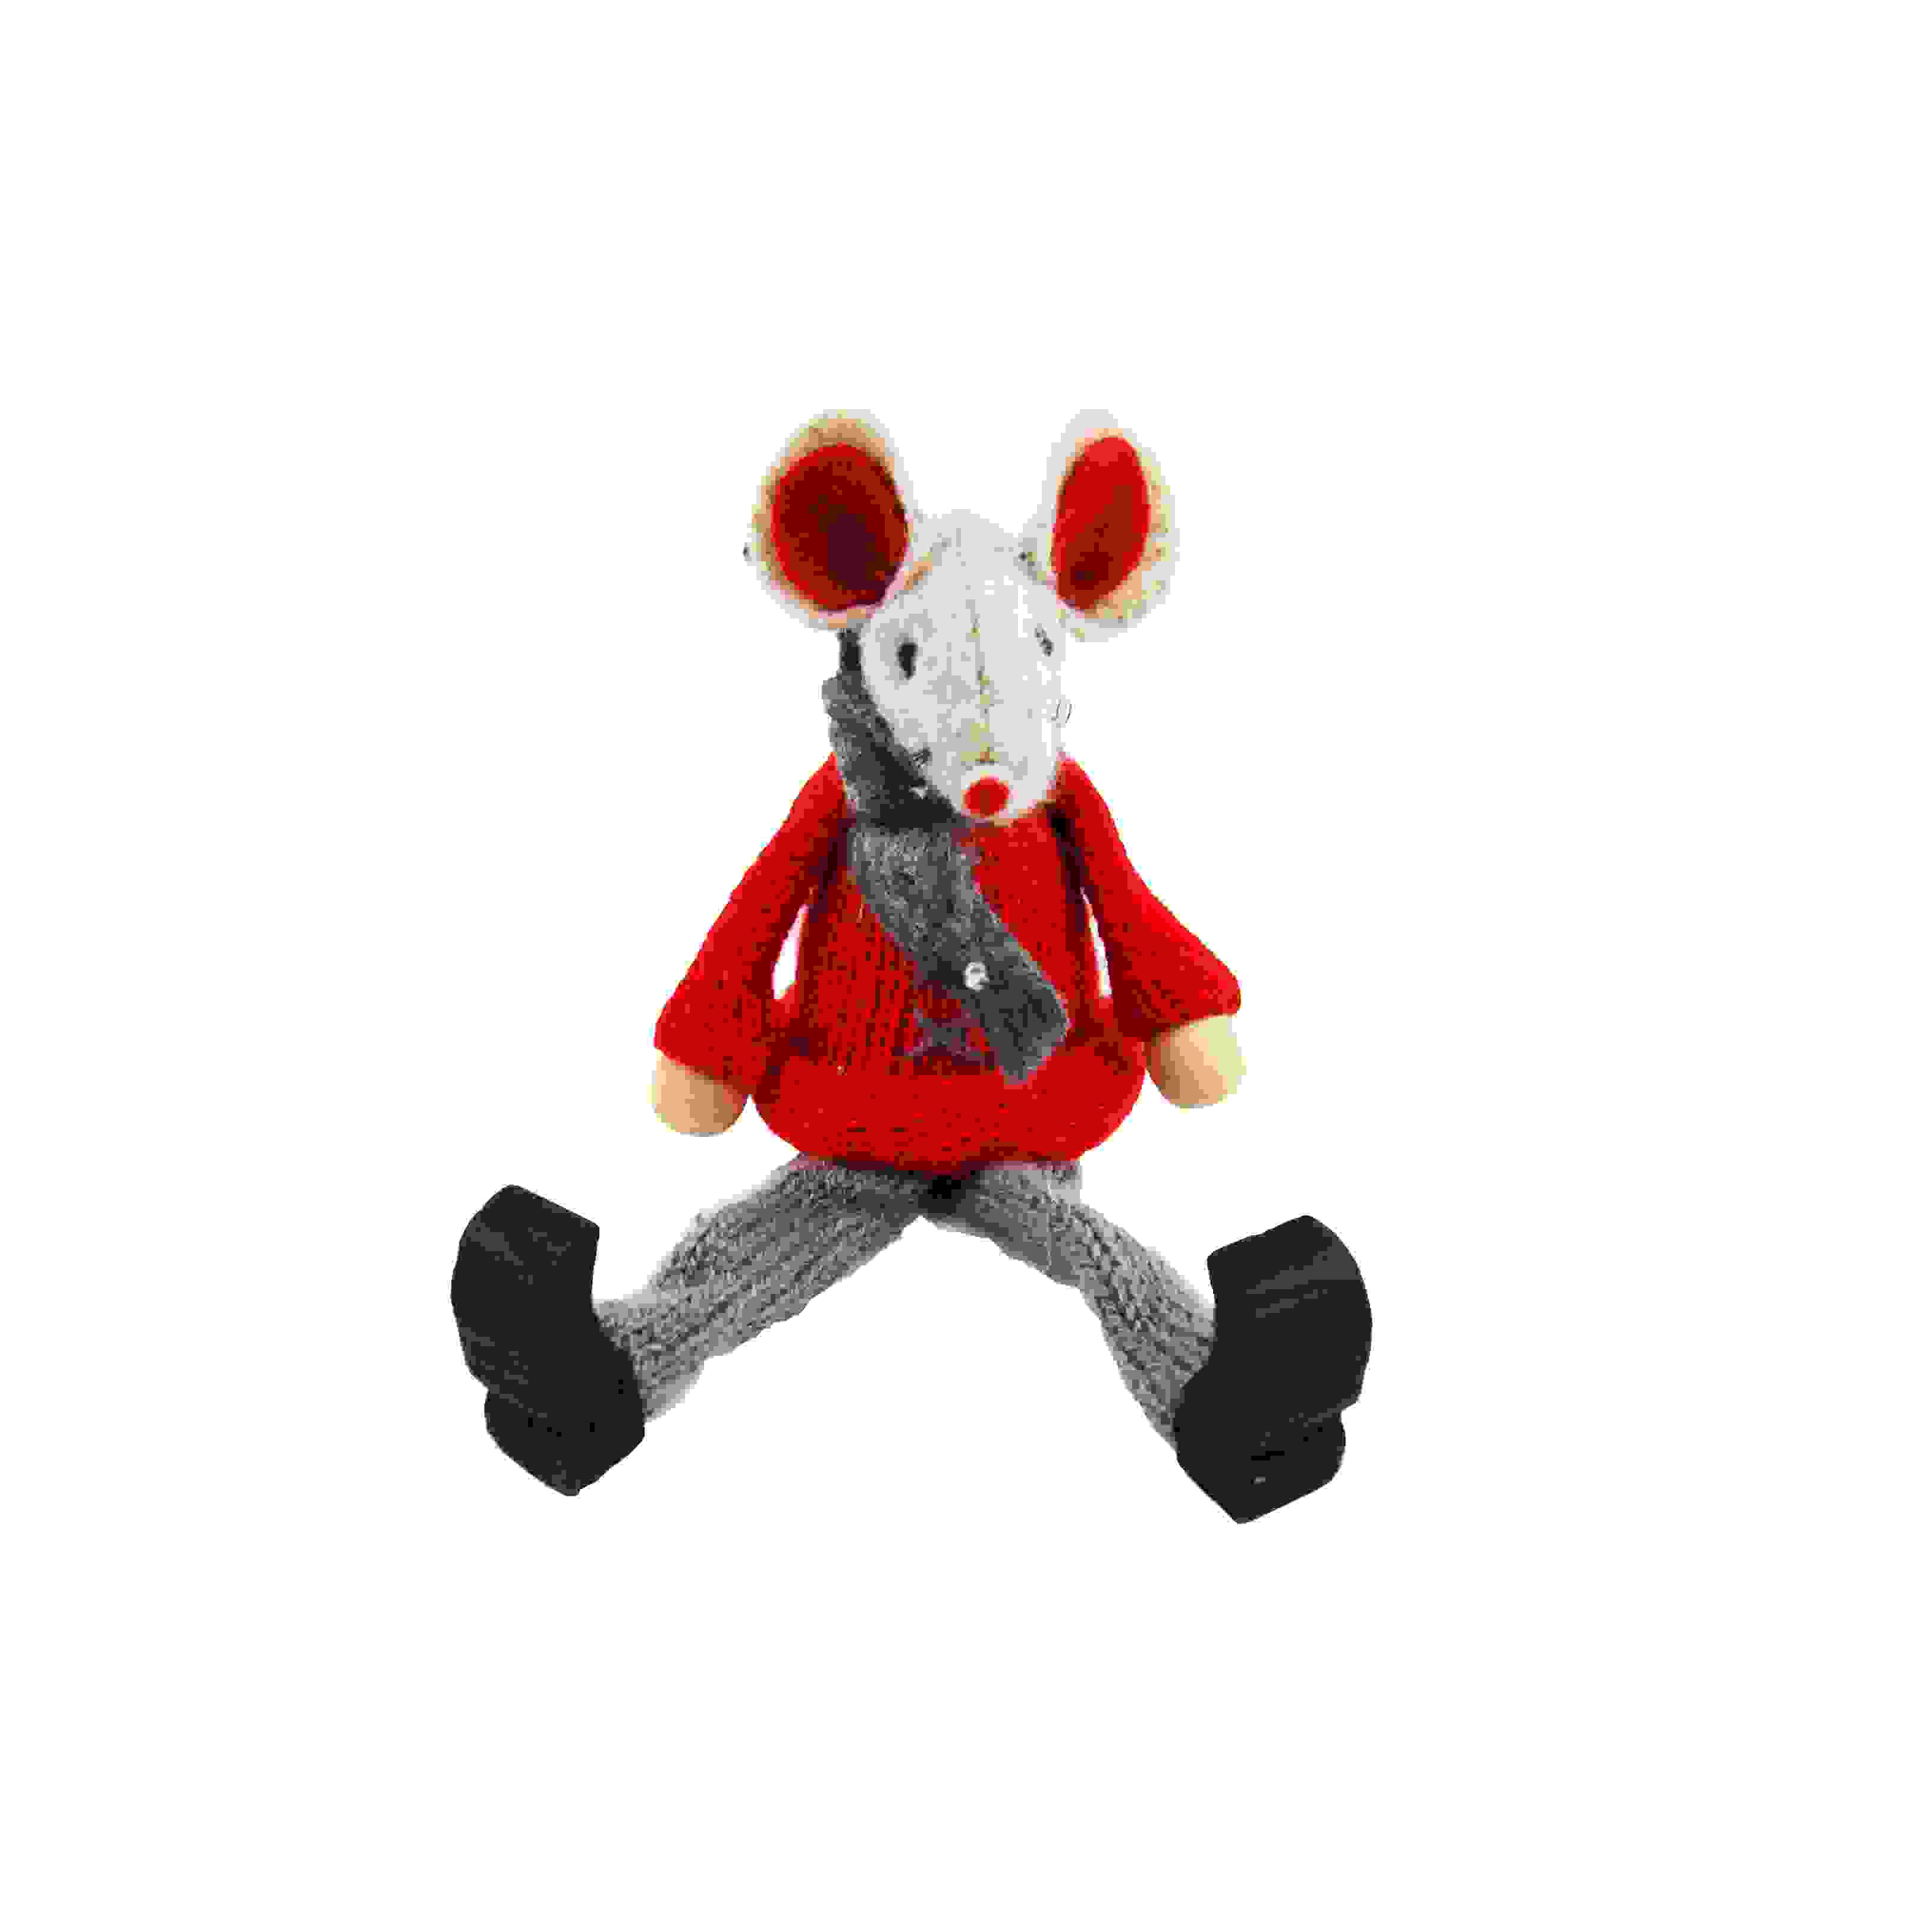 SITTING MOUSE 12cm RED